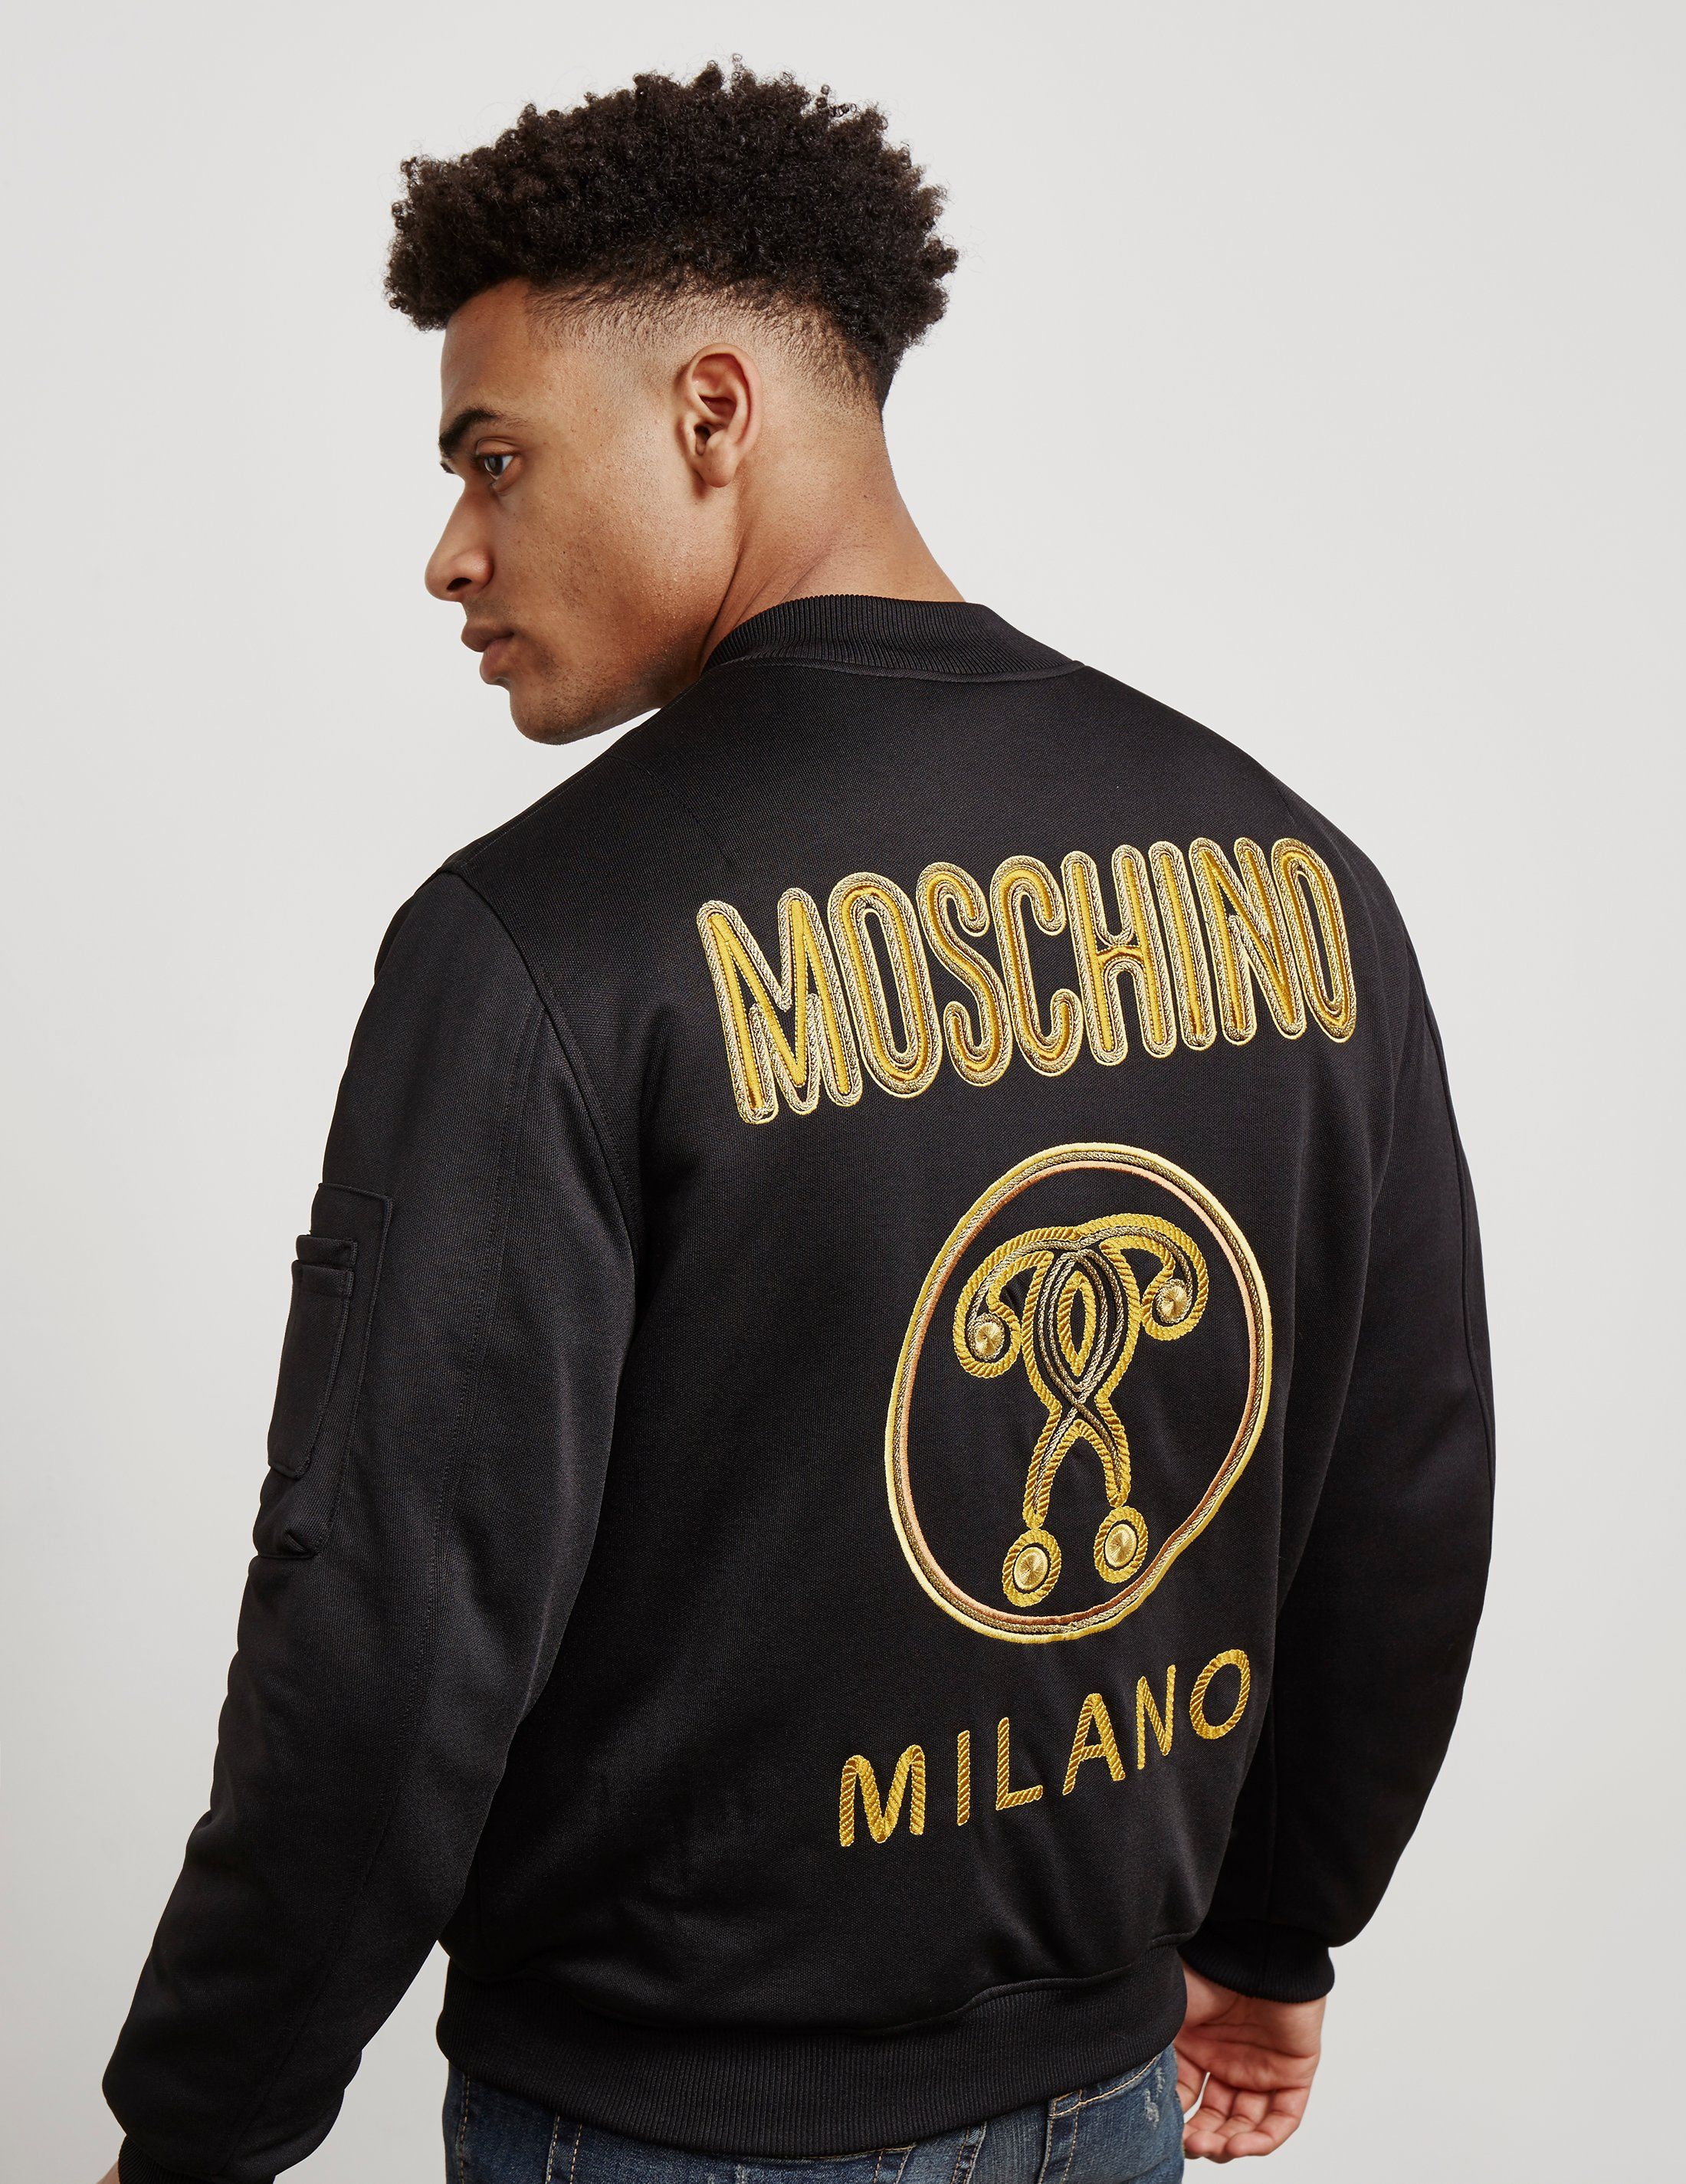 Moschino Milano Gold Bomber Jacket - Online Exclusive